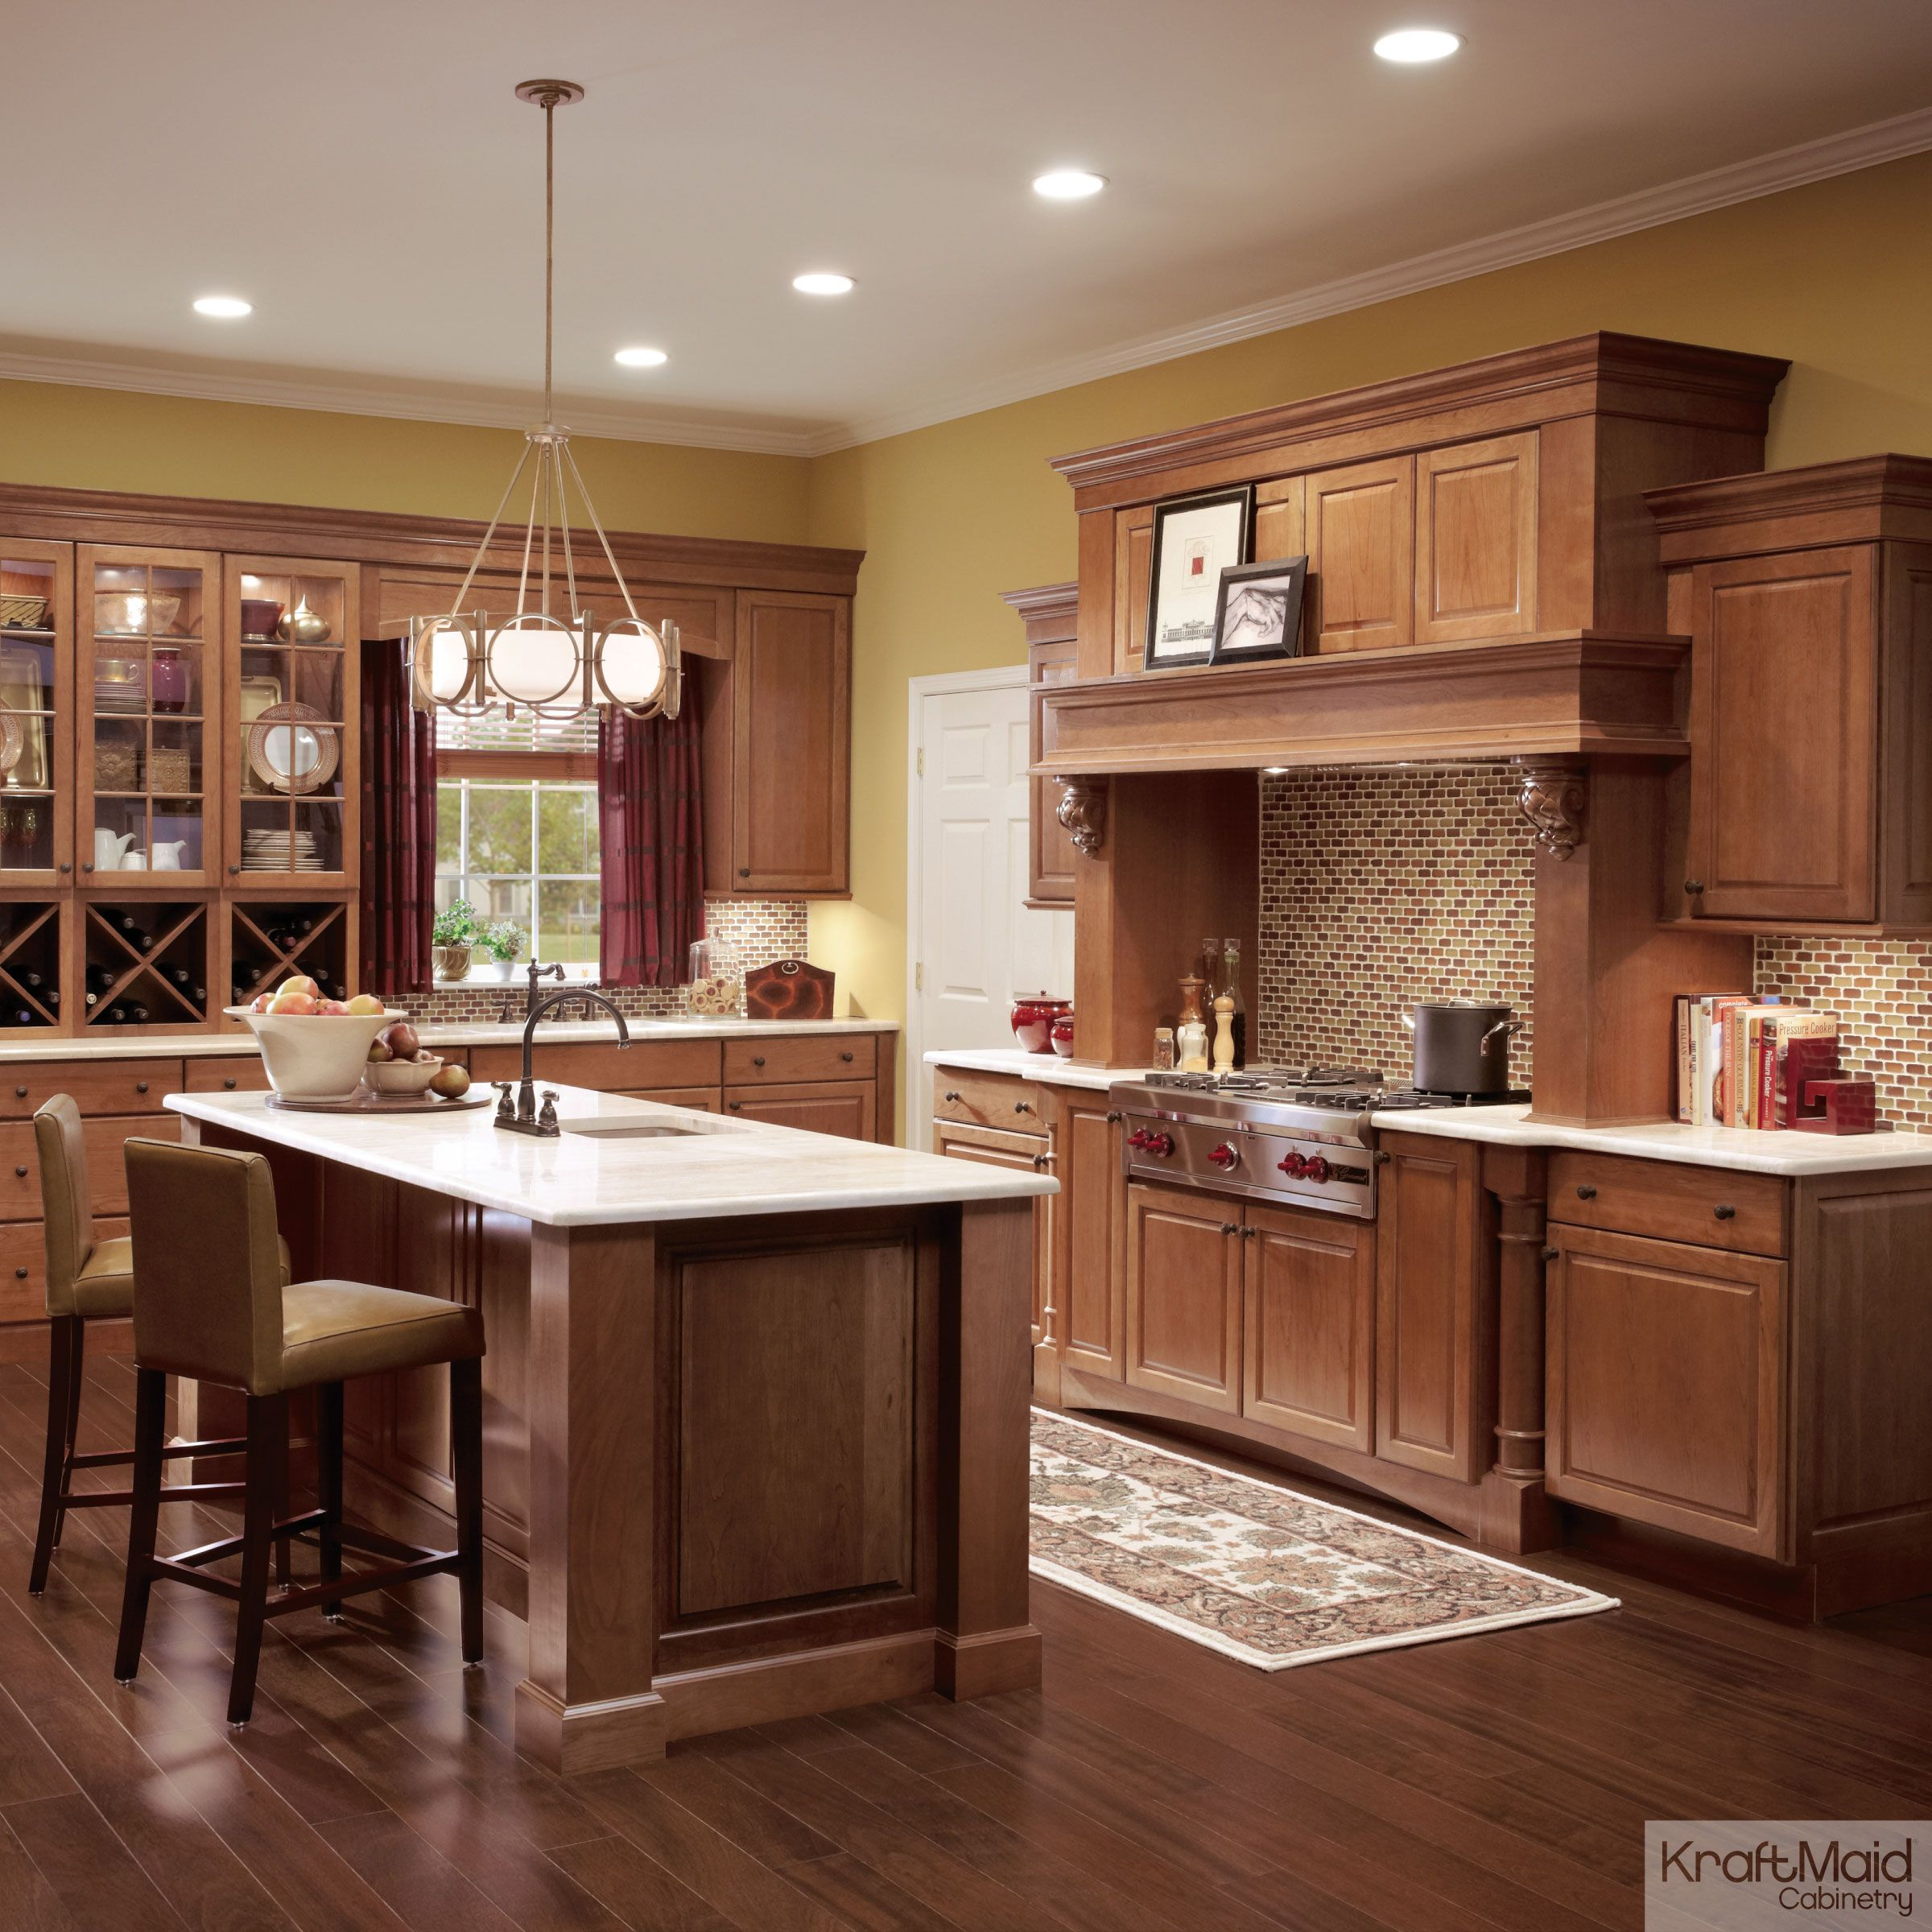 Pin On Kitchens Classically Traditional